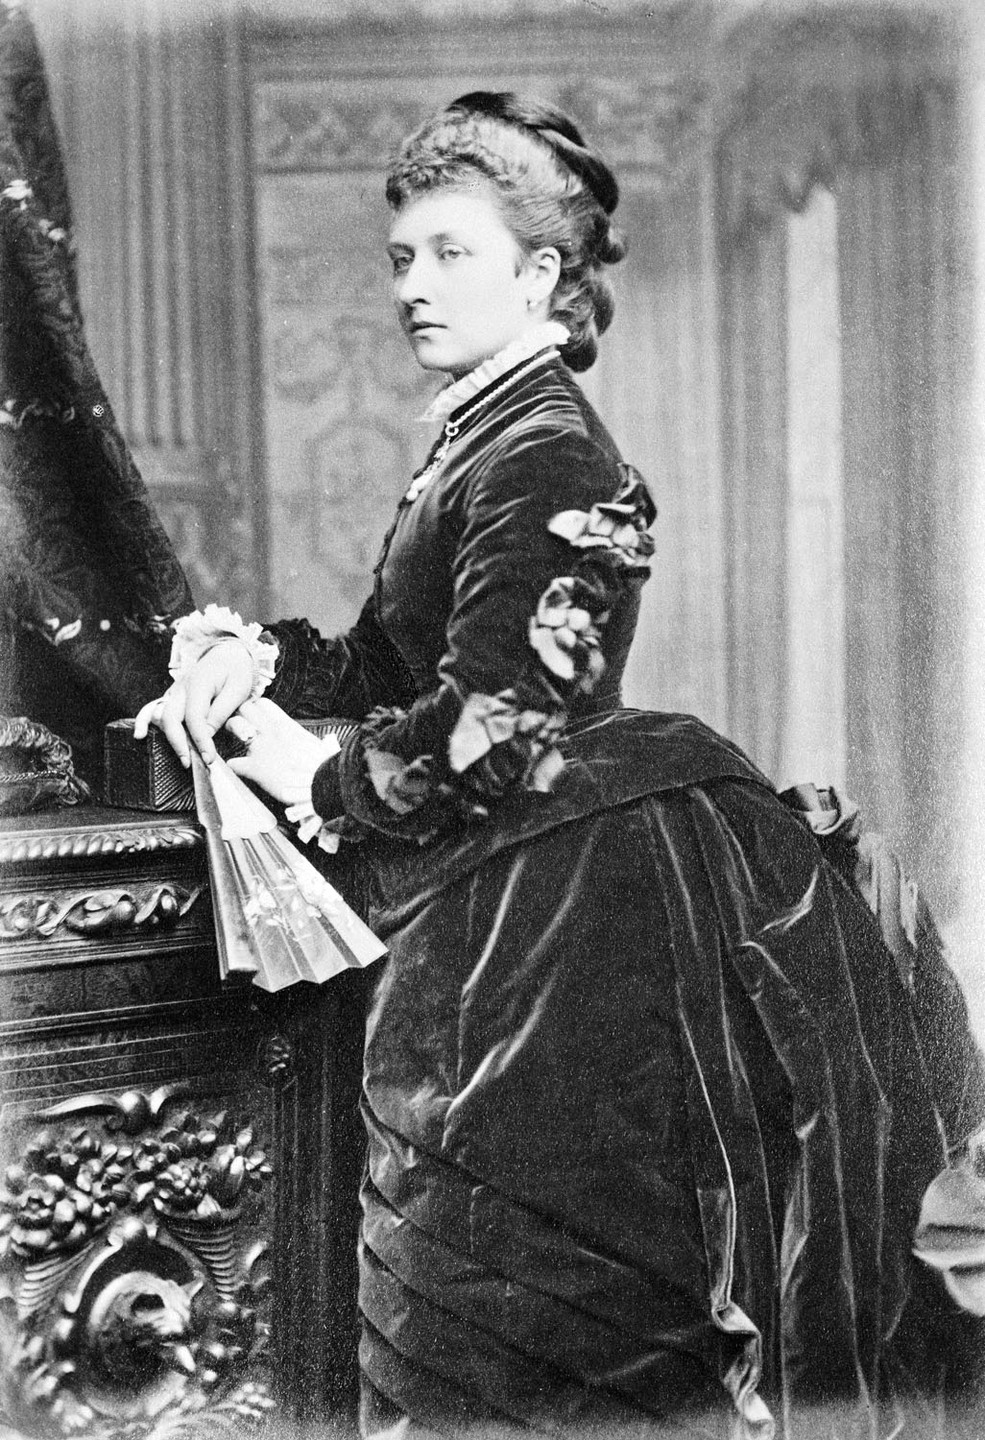 Princess Louise, daughter of Queen Victoria